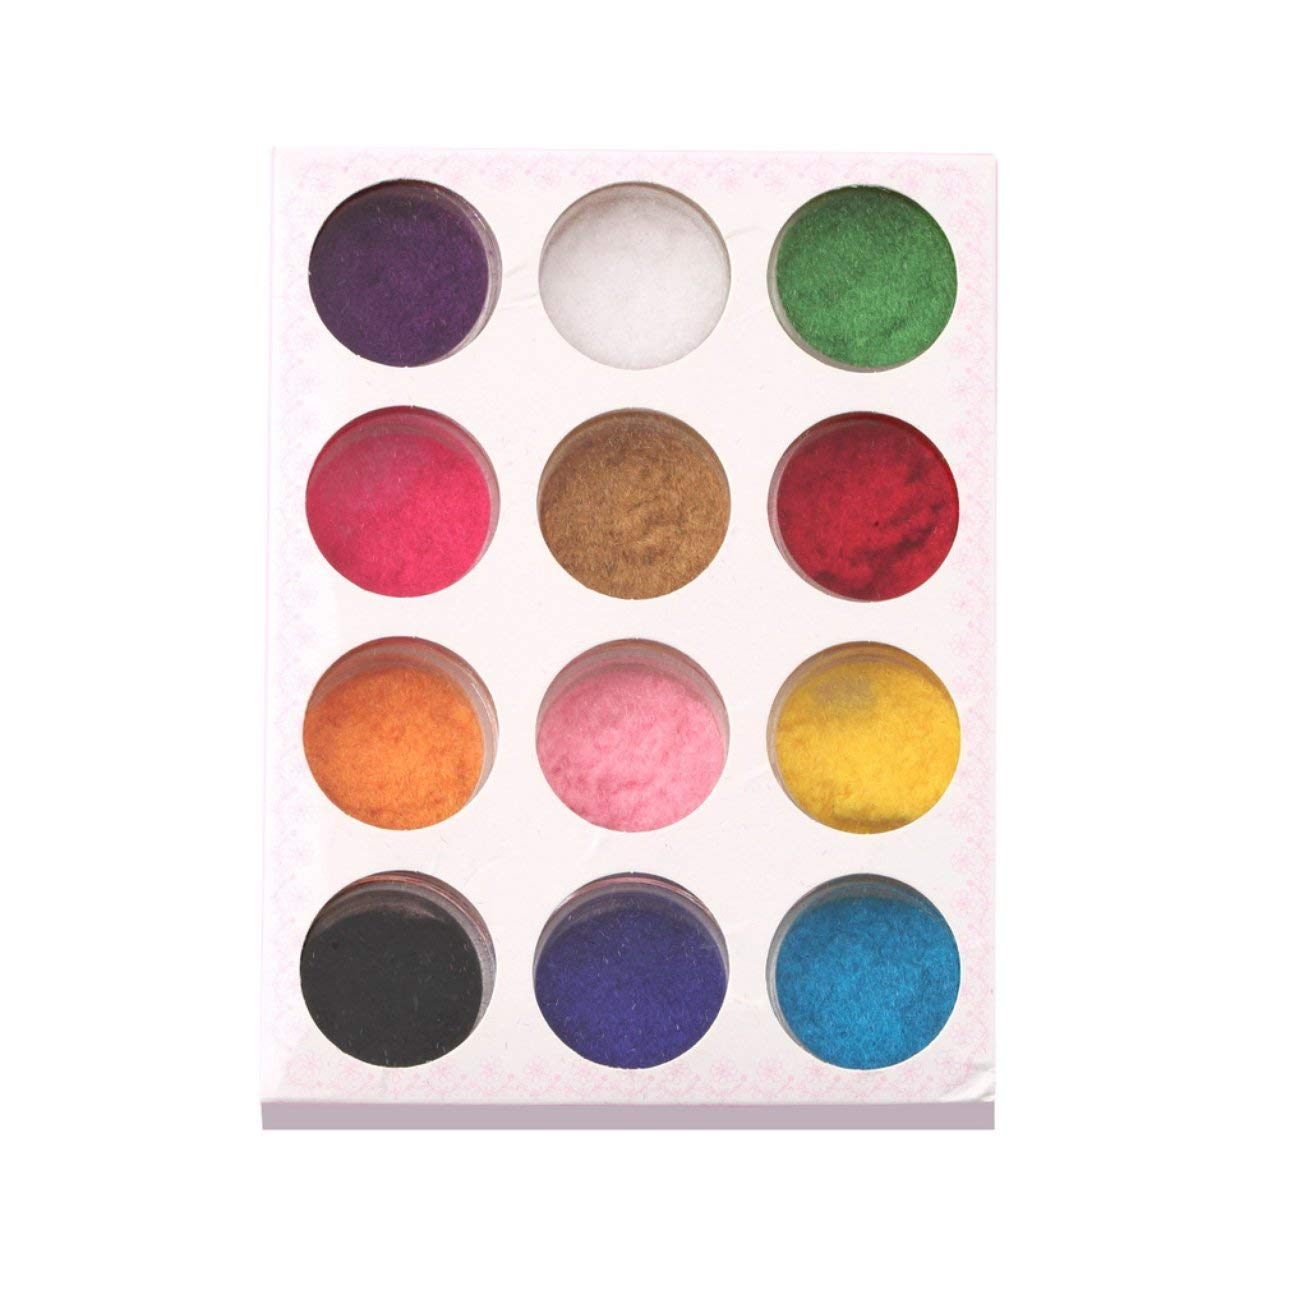 Liobaba 12 Mix Colors Powder Nail Art Dust Powder Design Tips Decoration for Nail Powder Manicure Nail Art